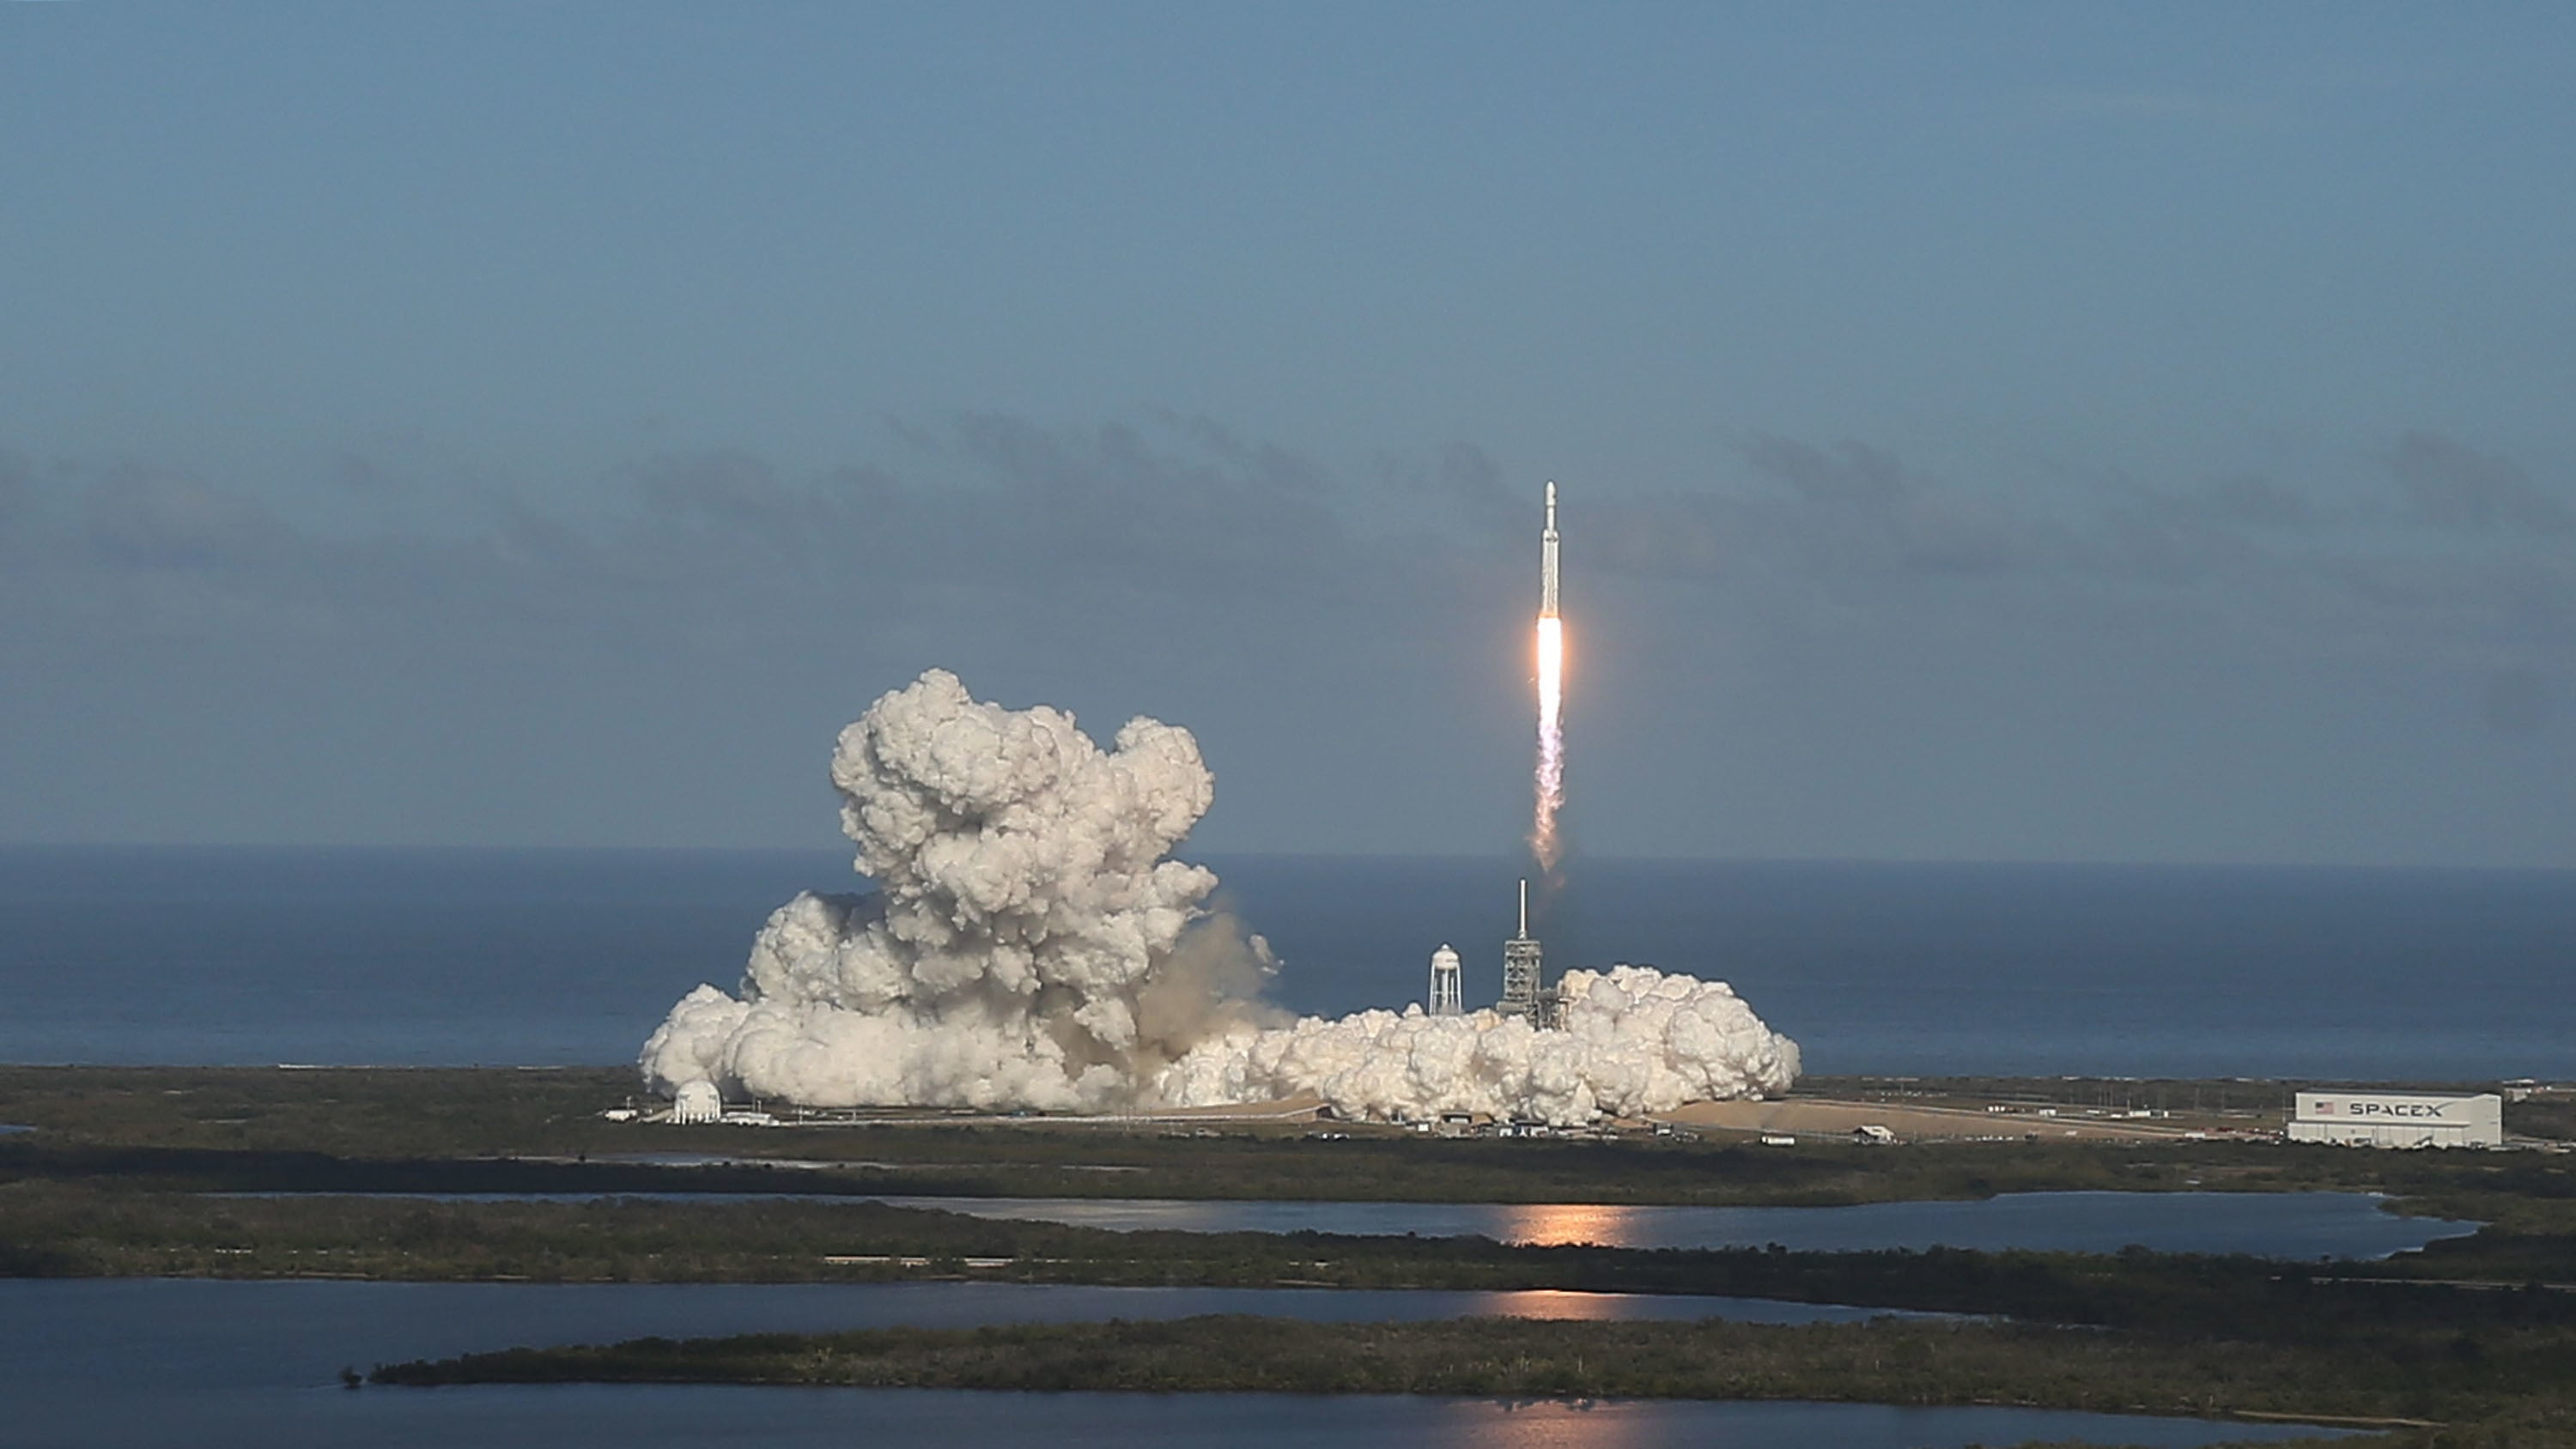 The FCC Just Gave SpaceX The Go-Ahead To Build A Space Internet